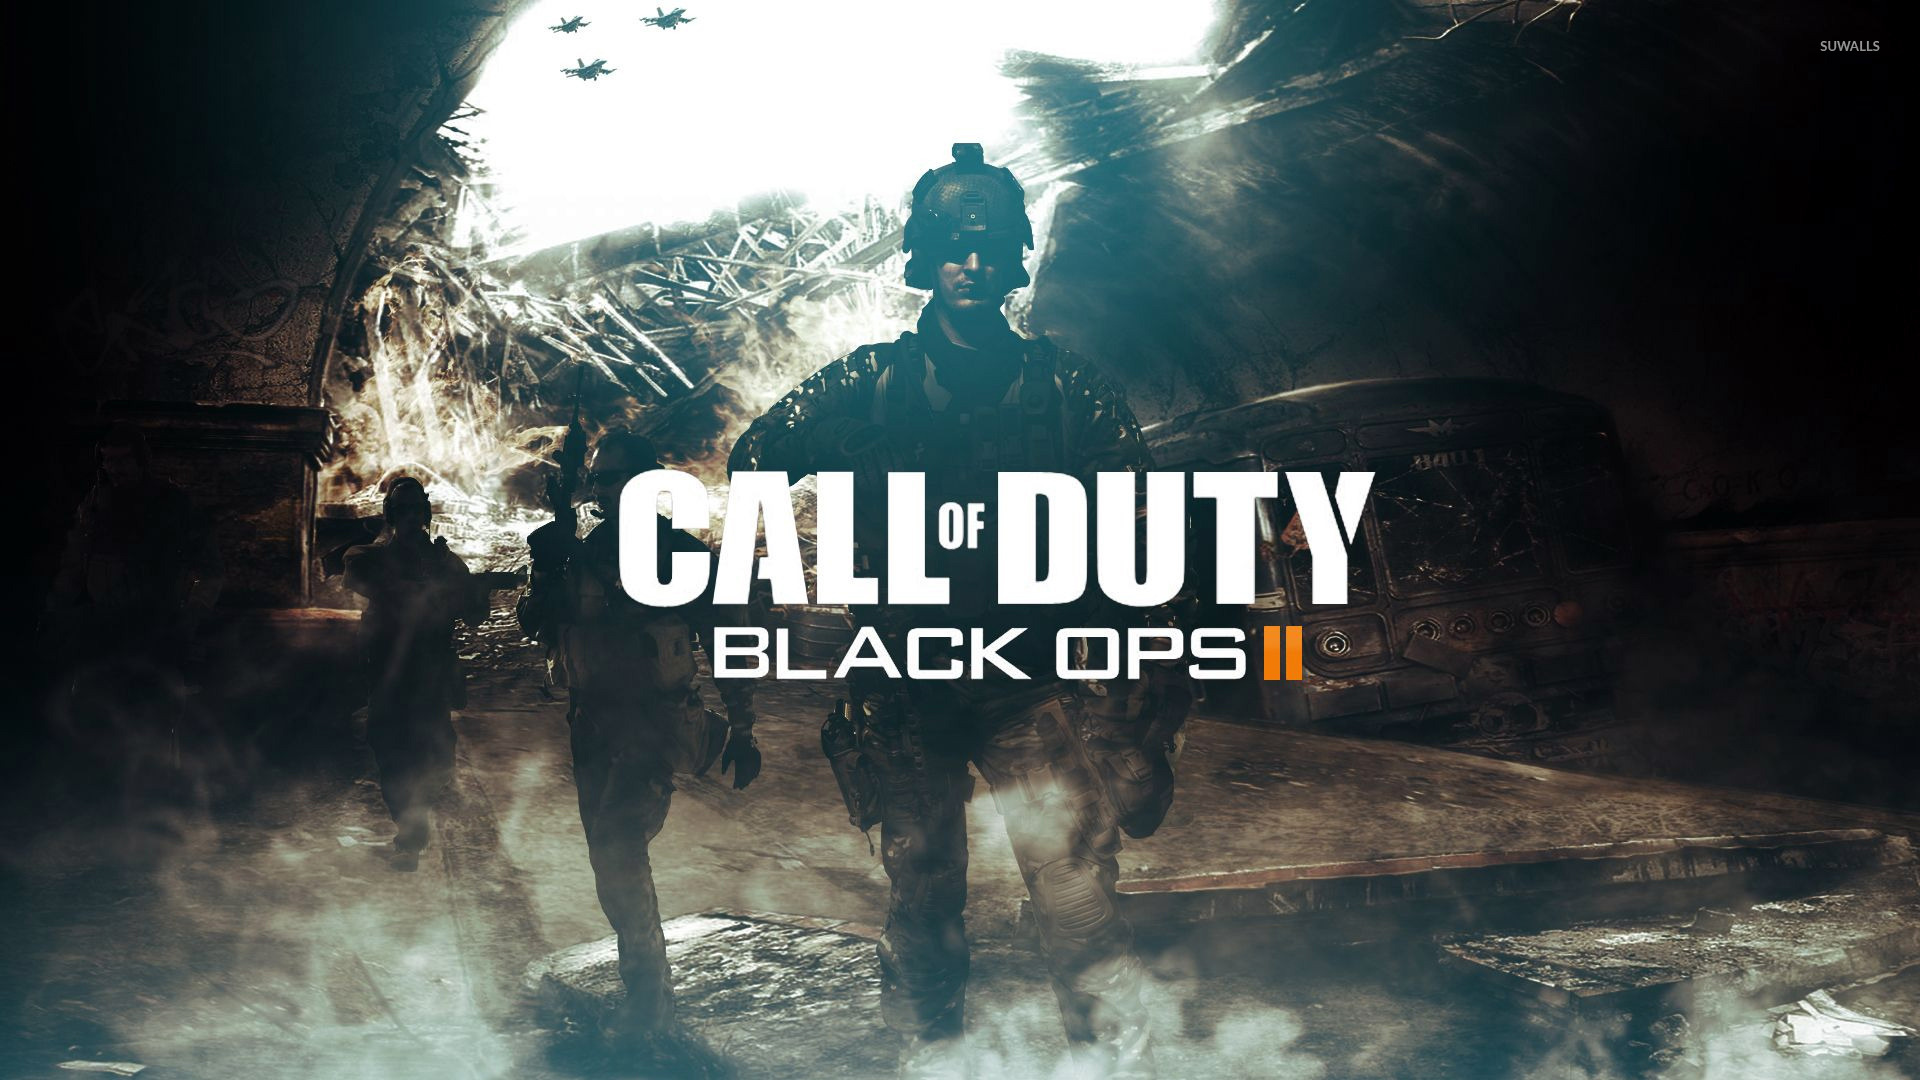 Call Of Duty Black Ops Ii 8 Wallpaper Game Wallpapers 15930